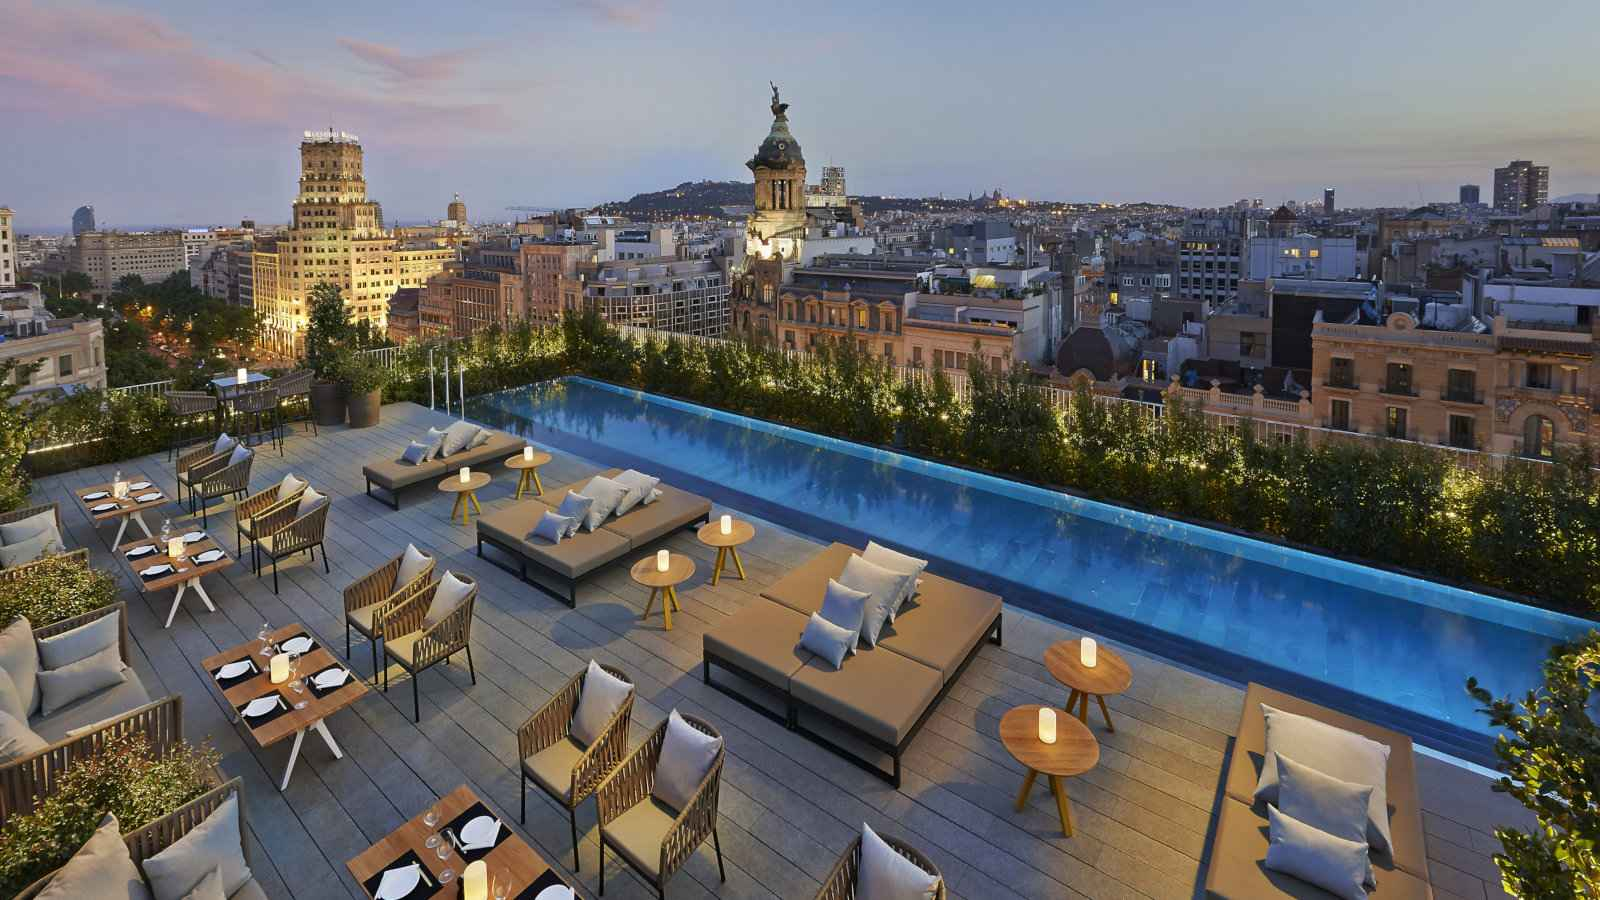 The Mandarin Oriental Barcelona is a luxurious and gay friendly hotel with stunning views from the rooftop terrace